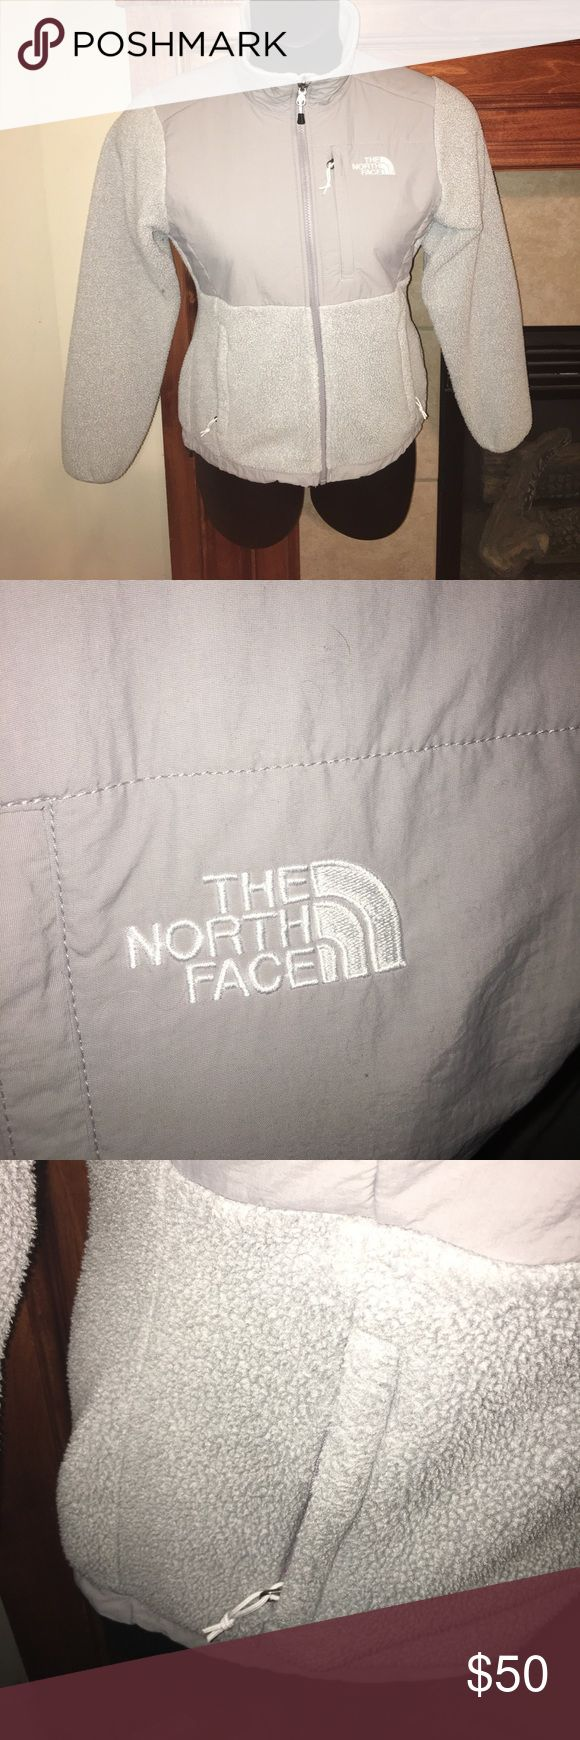 🆕 Listing Ladies NORTHFACE Jacket Gently used jacket. No stains or rips. Very warm jacket. The North Face Jackets & Coats